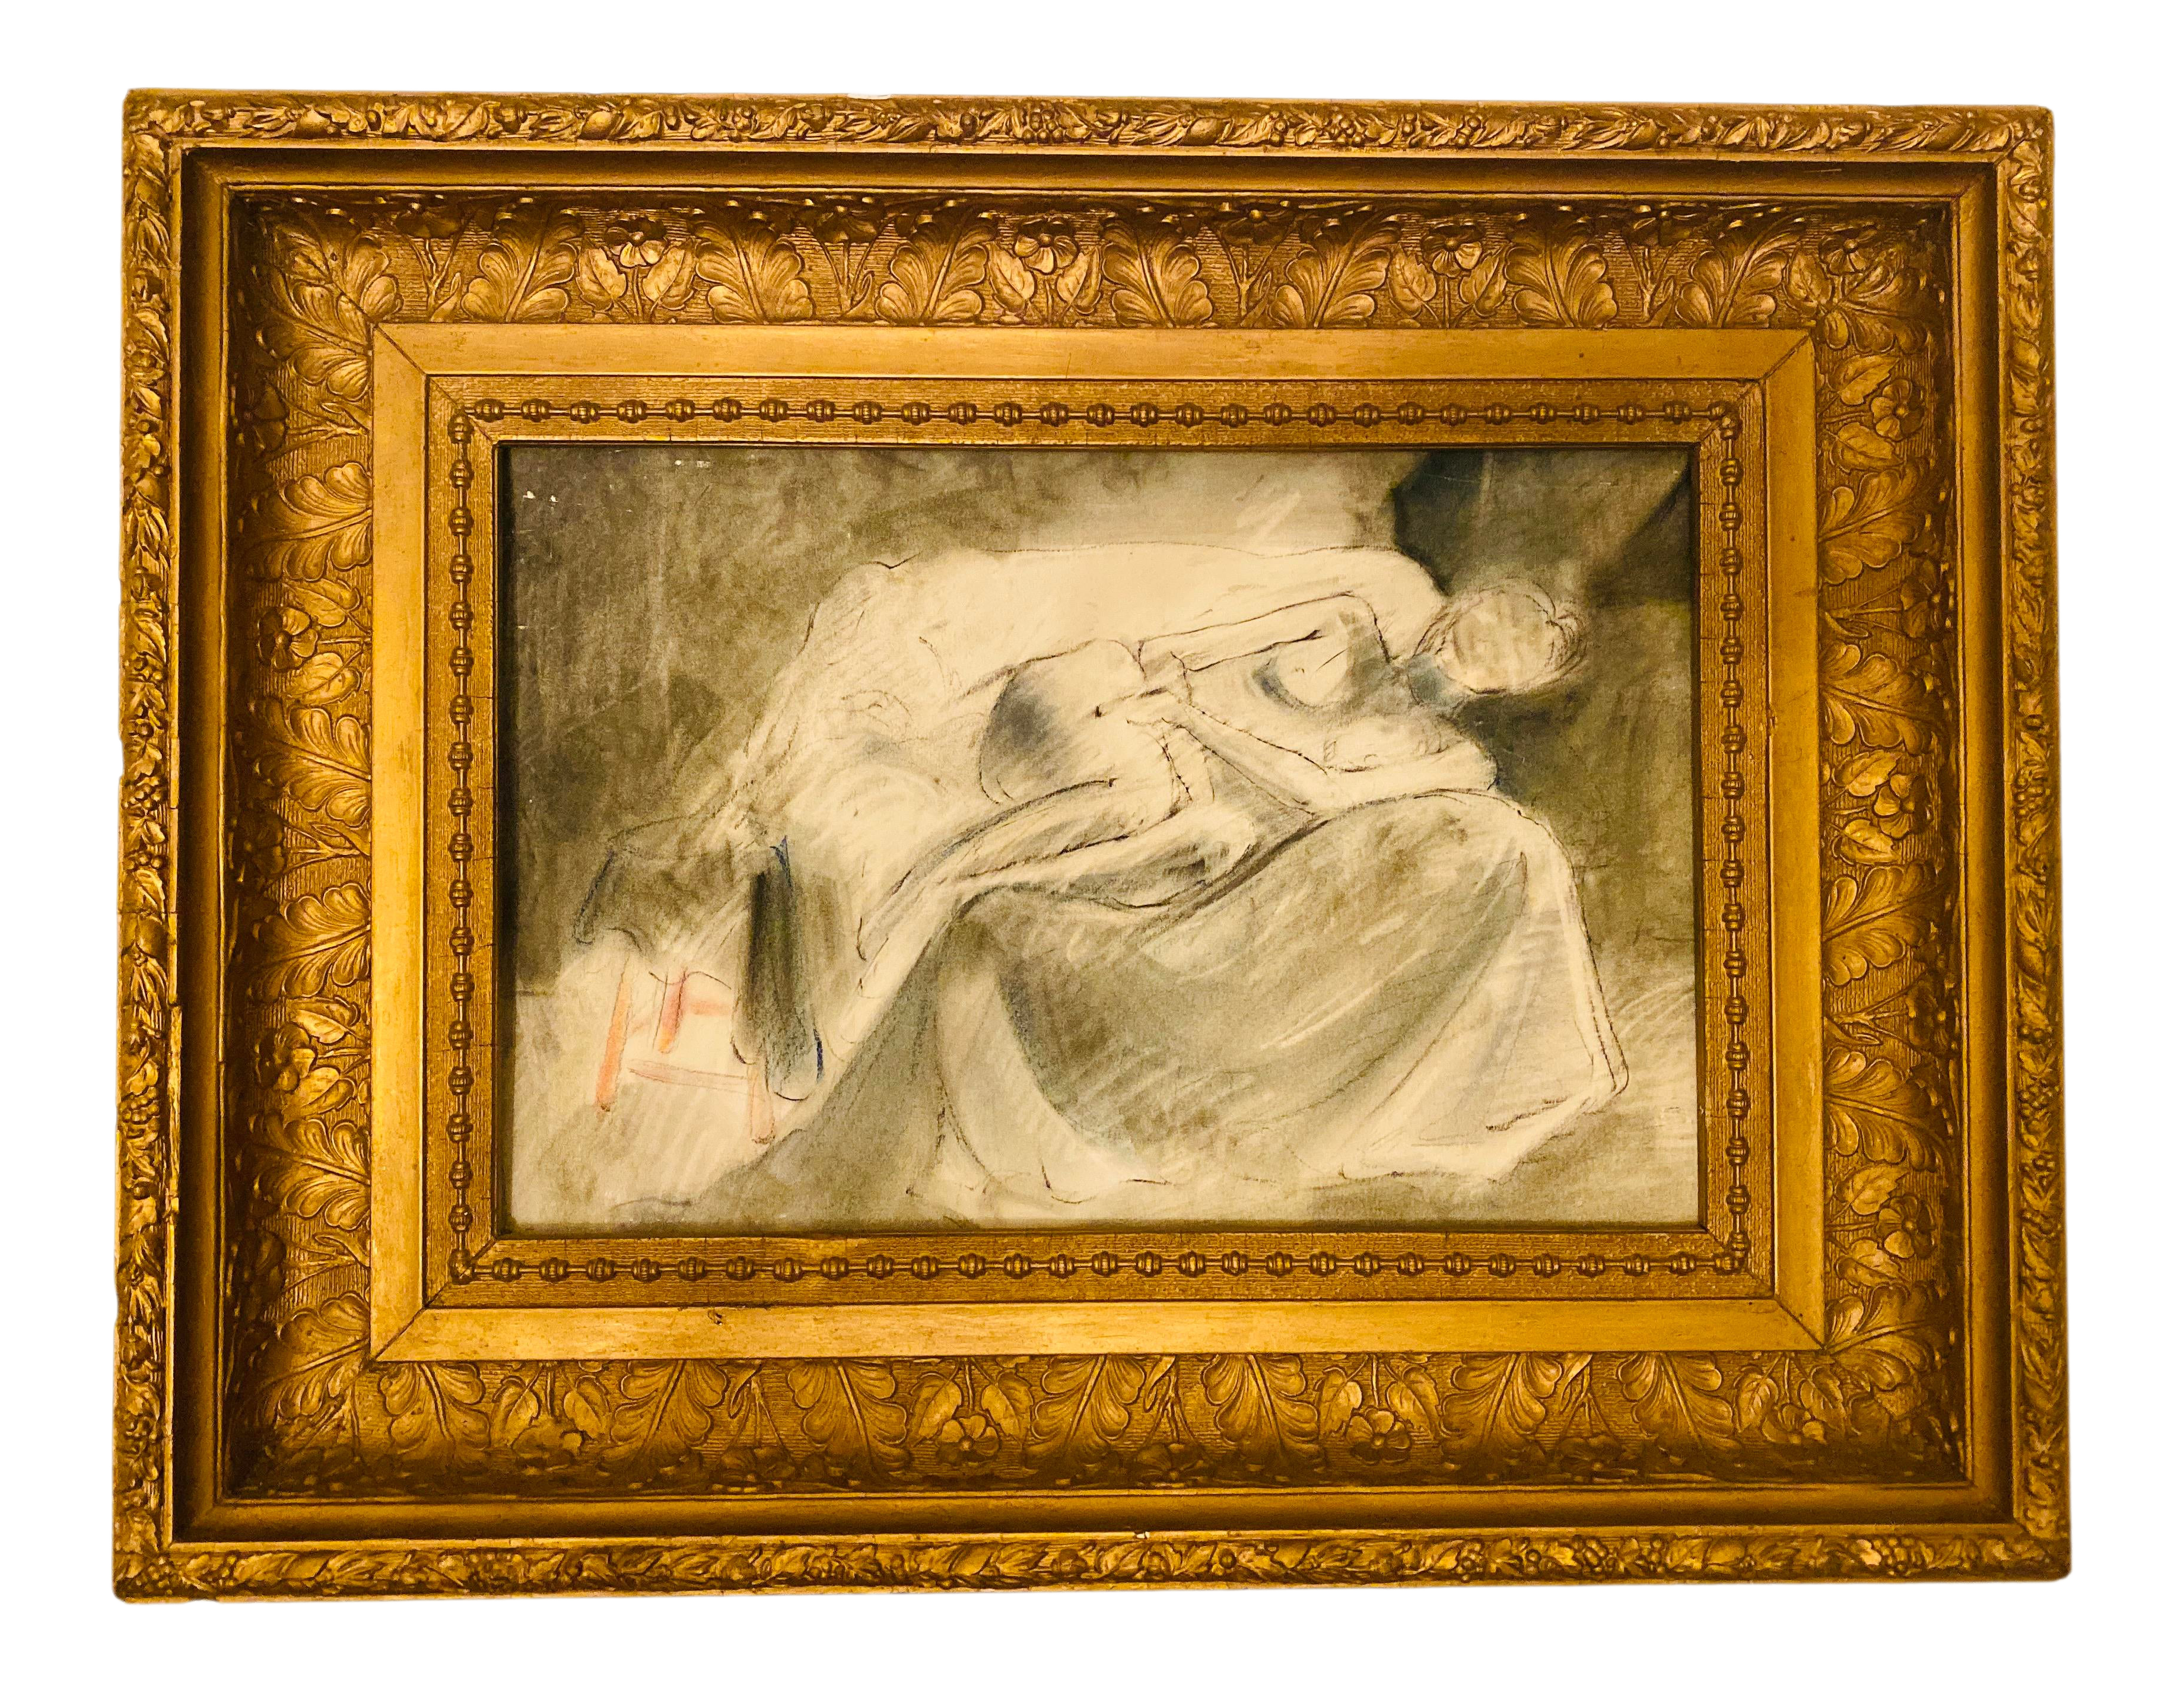 Vintage Nude Female On Sofa Charcoal Pencil Sketch Drawing In Baroque Carved Gold Gilt Gesso Frame Chairish